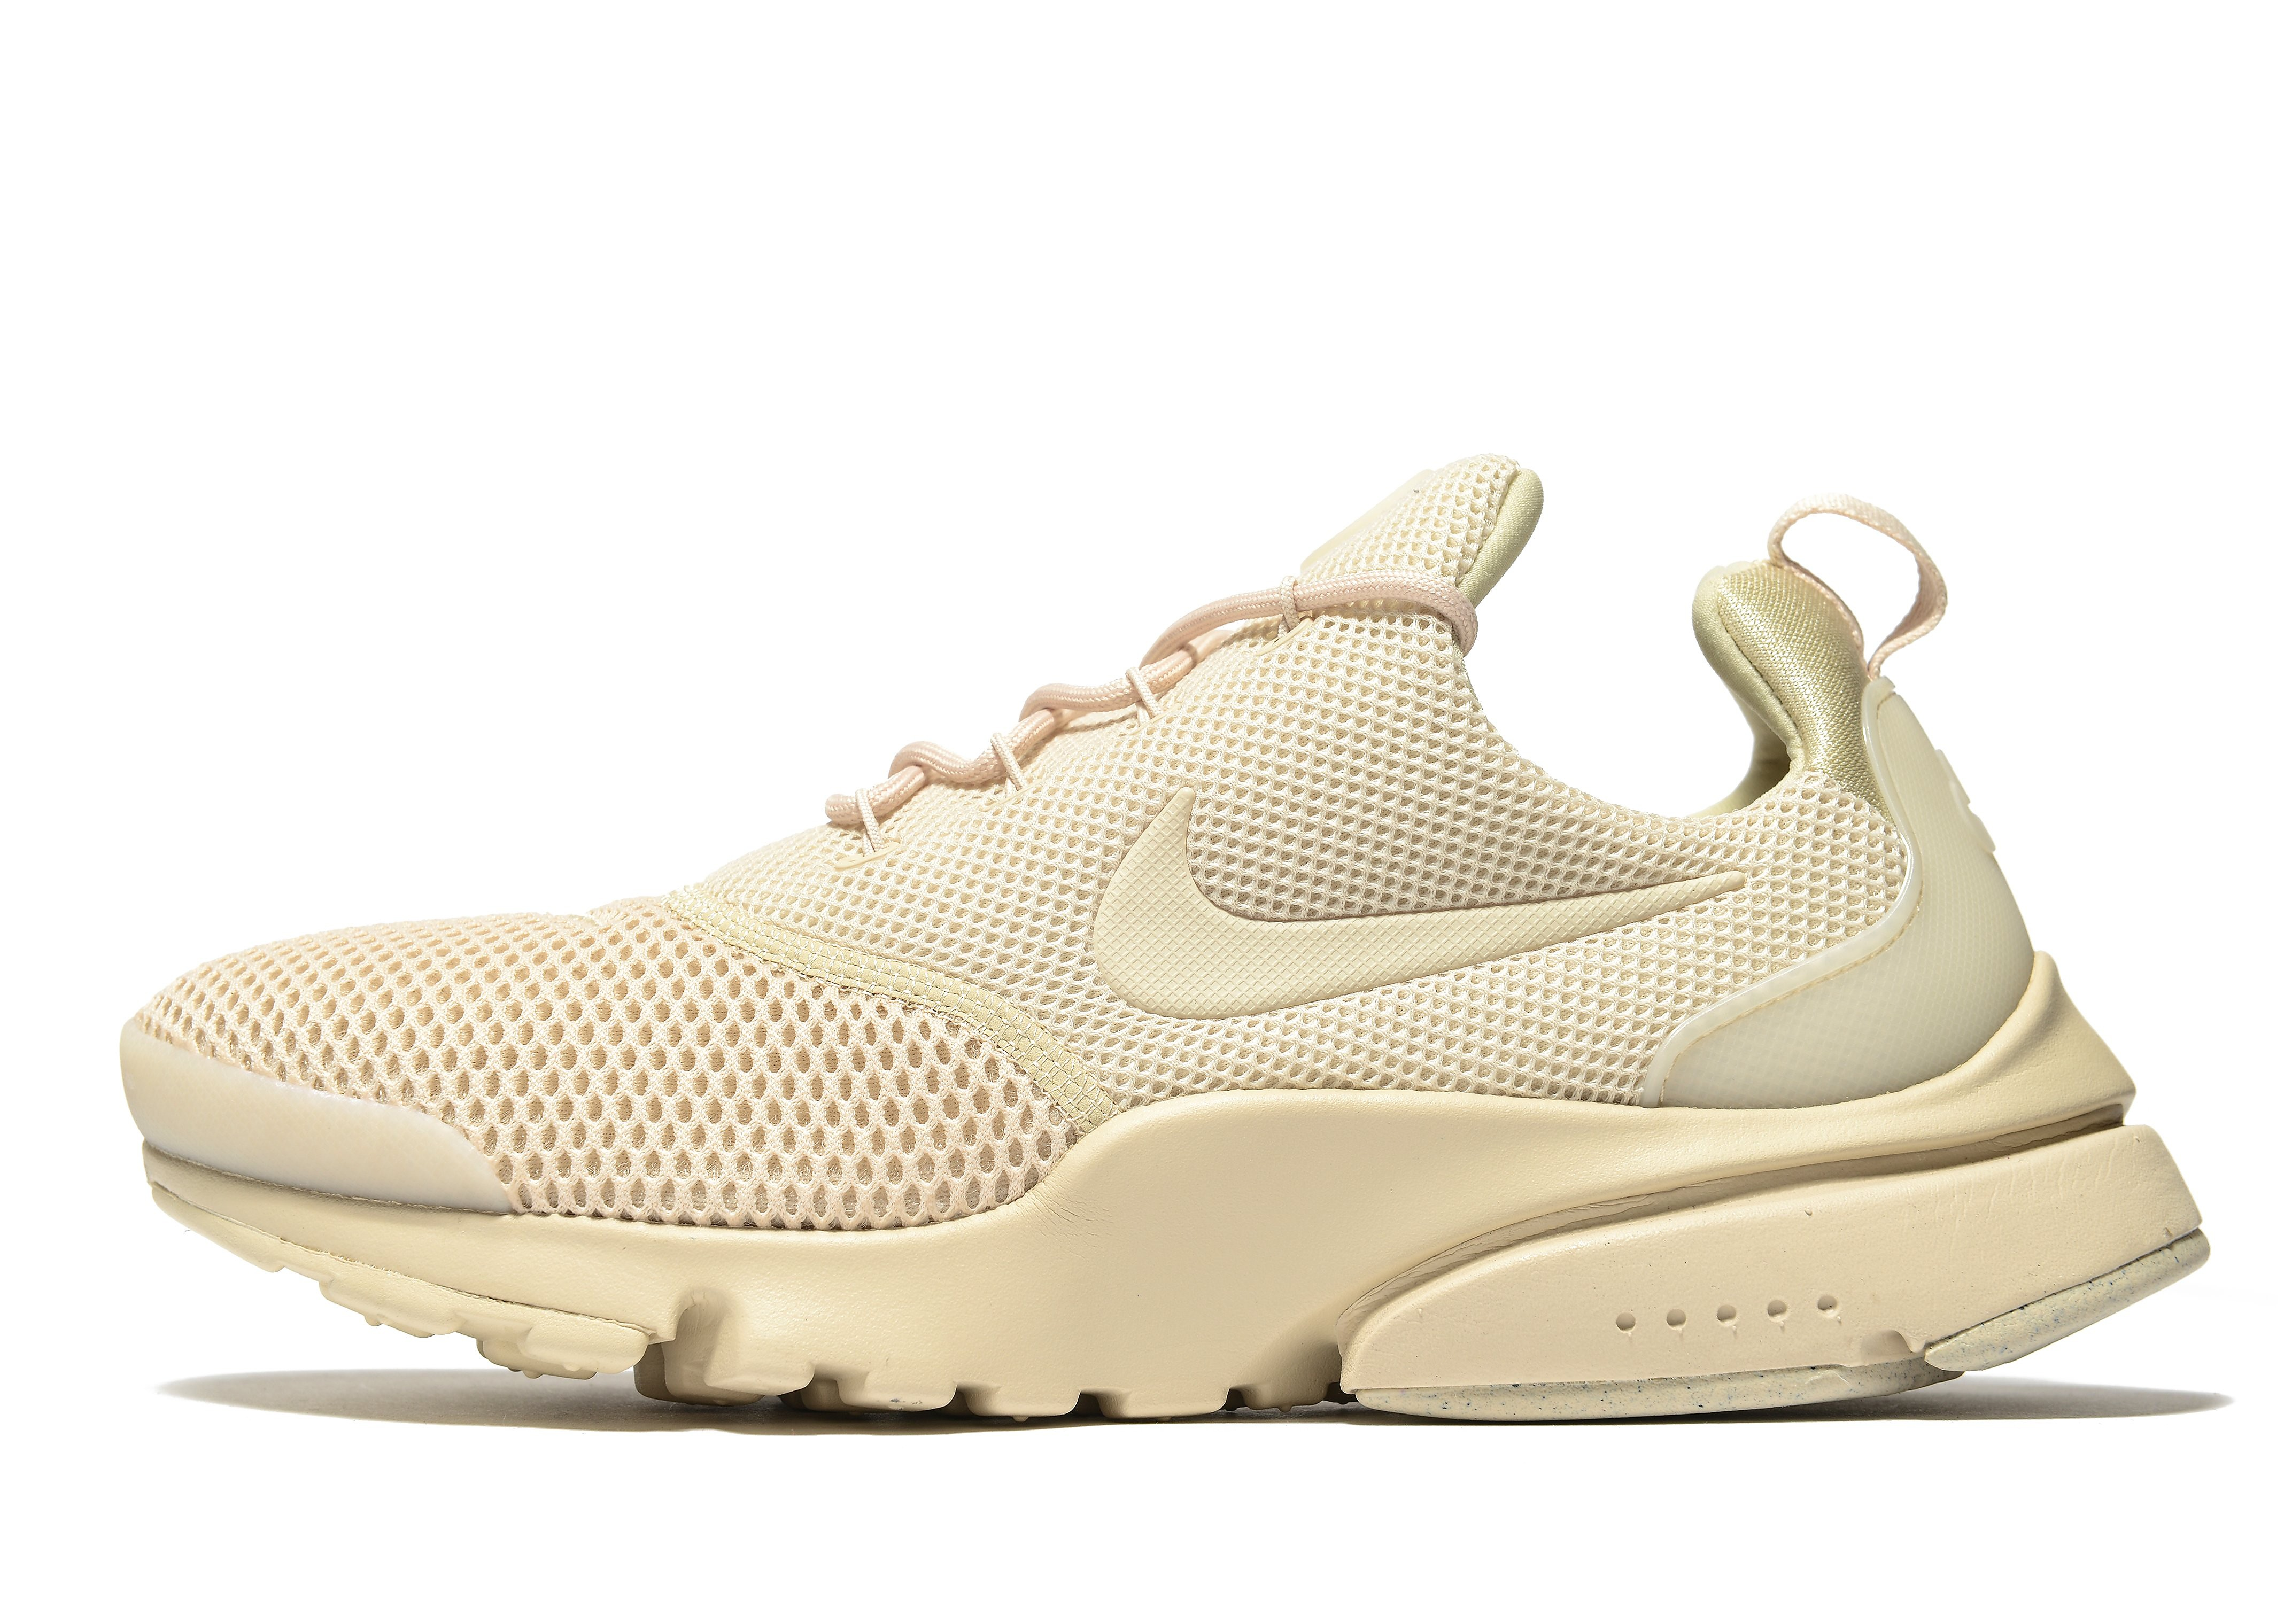 Nike Air Presto Fly Women's